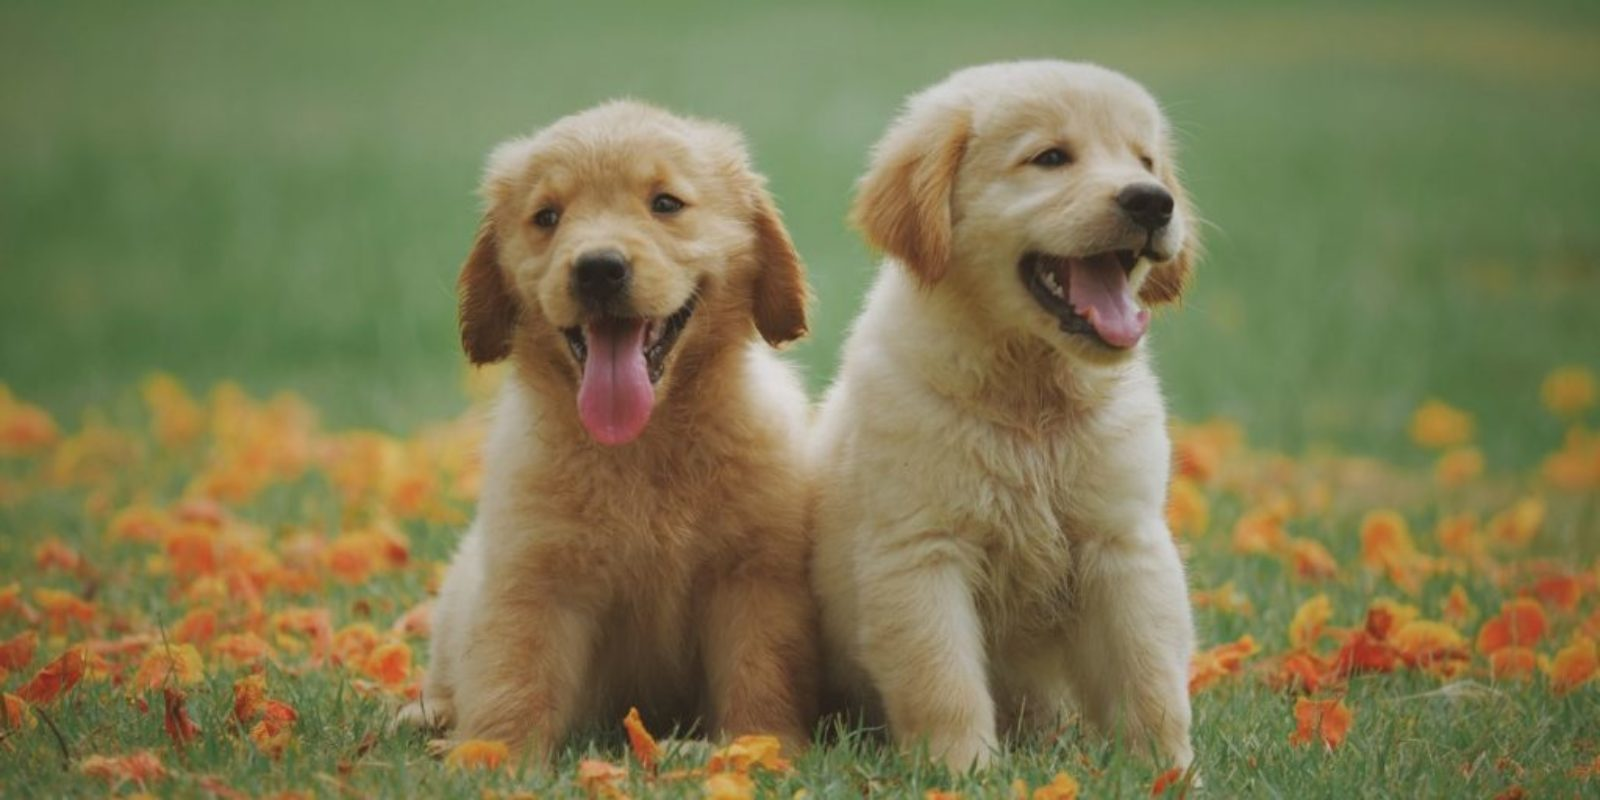 Two puppies sitting together in the grass.